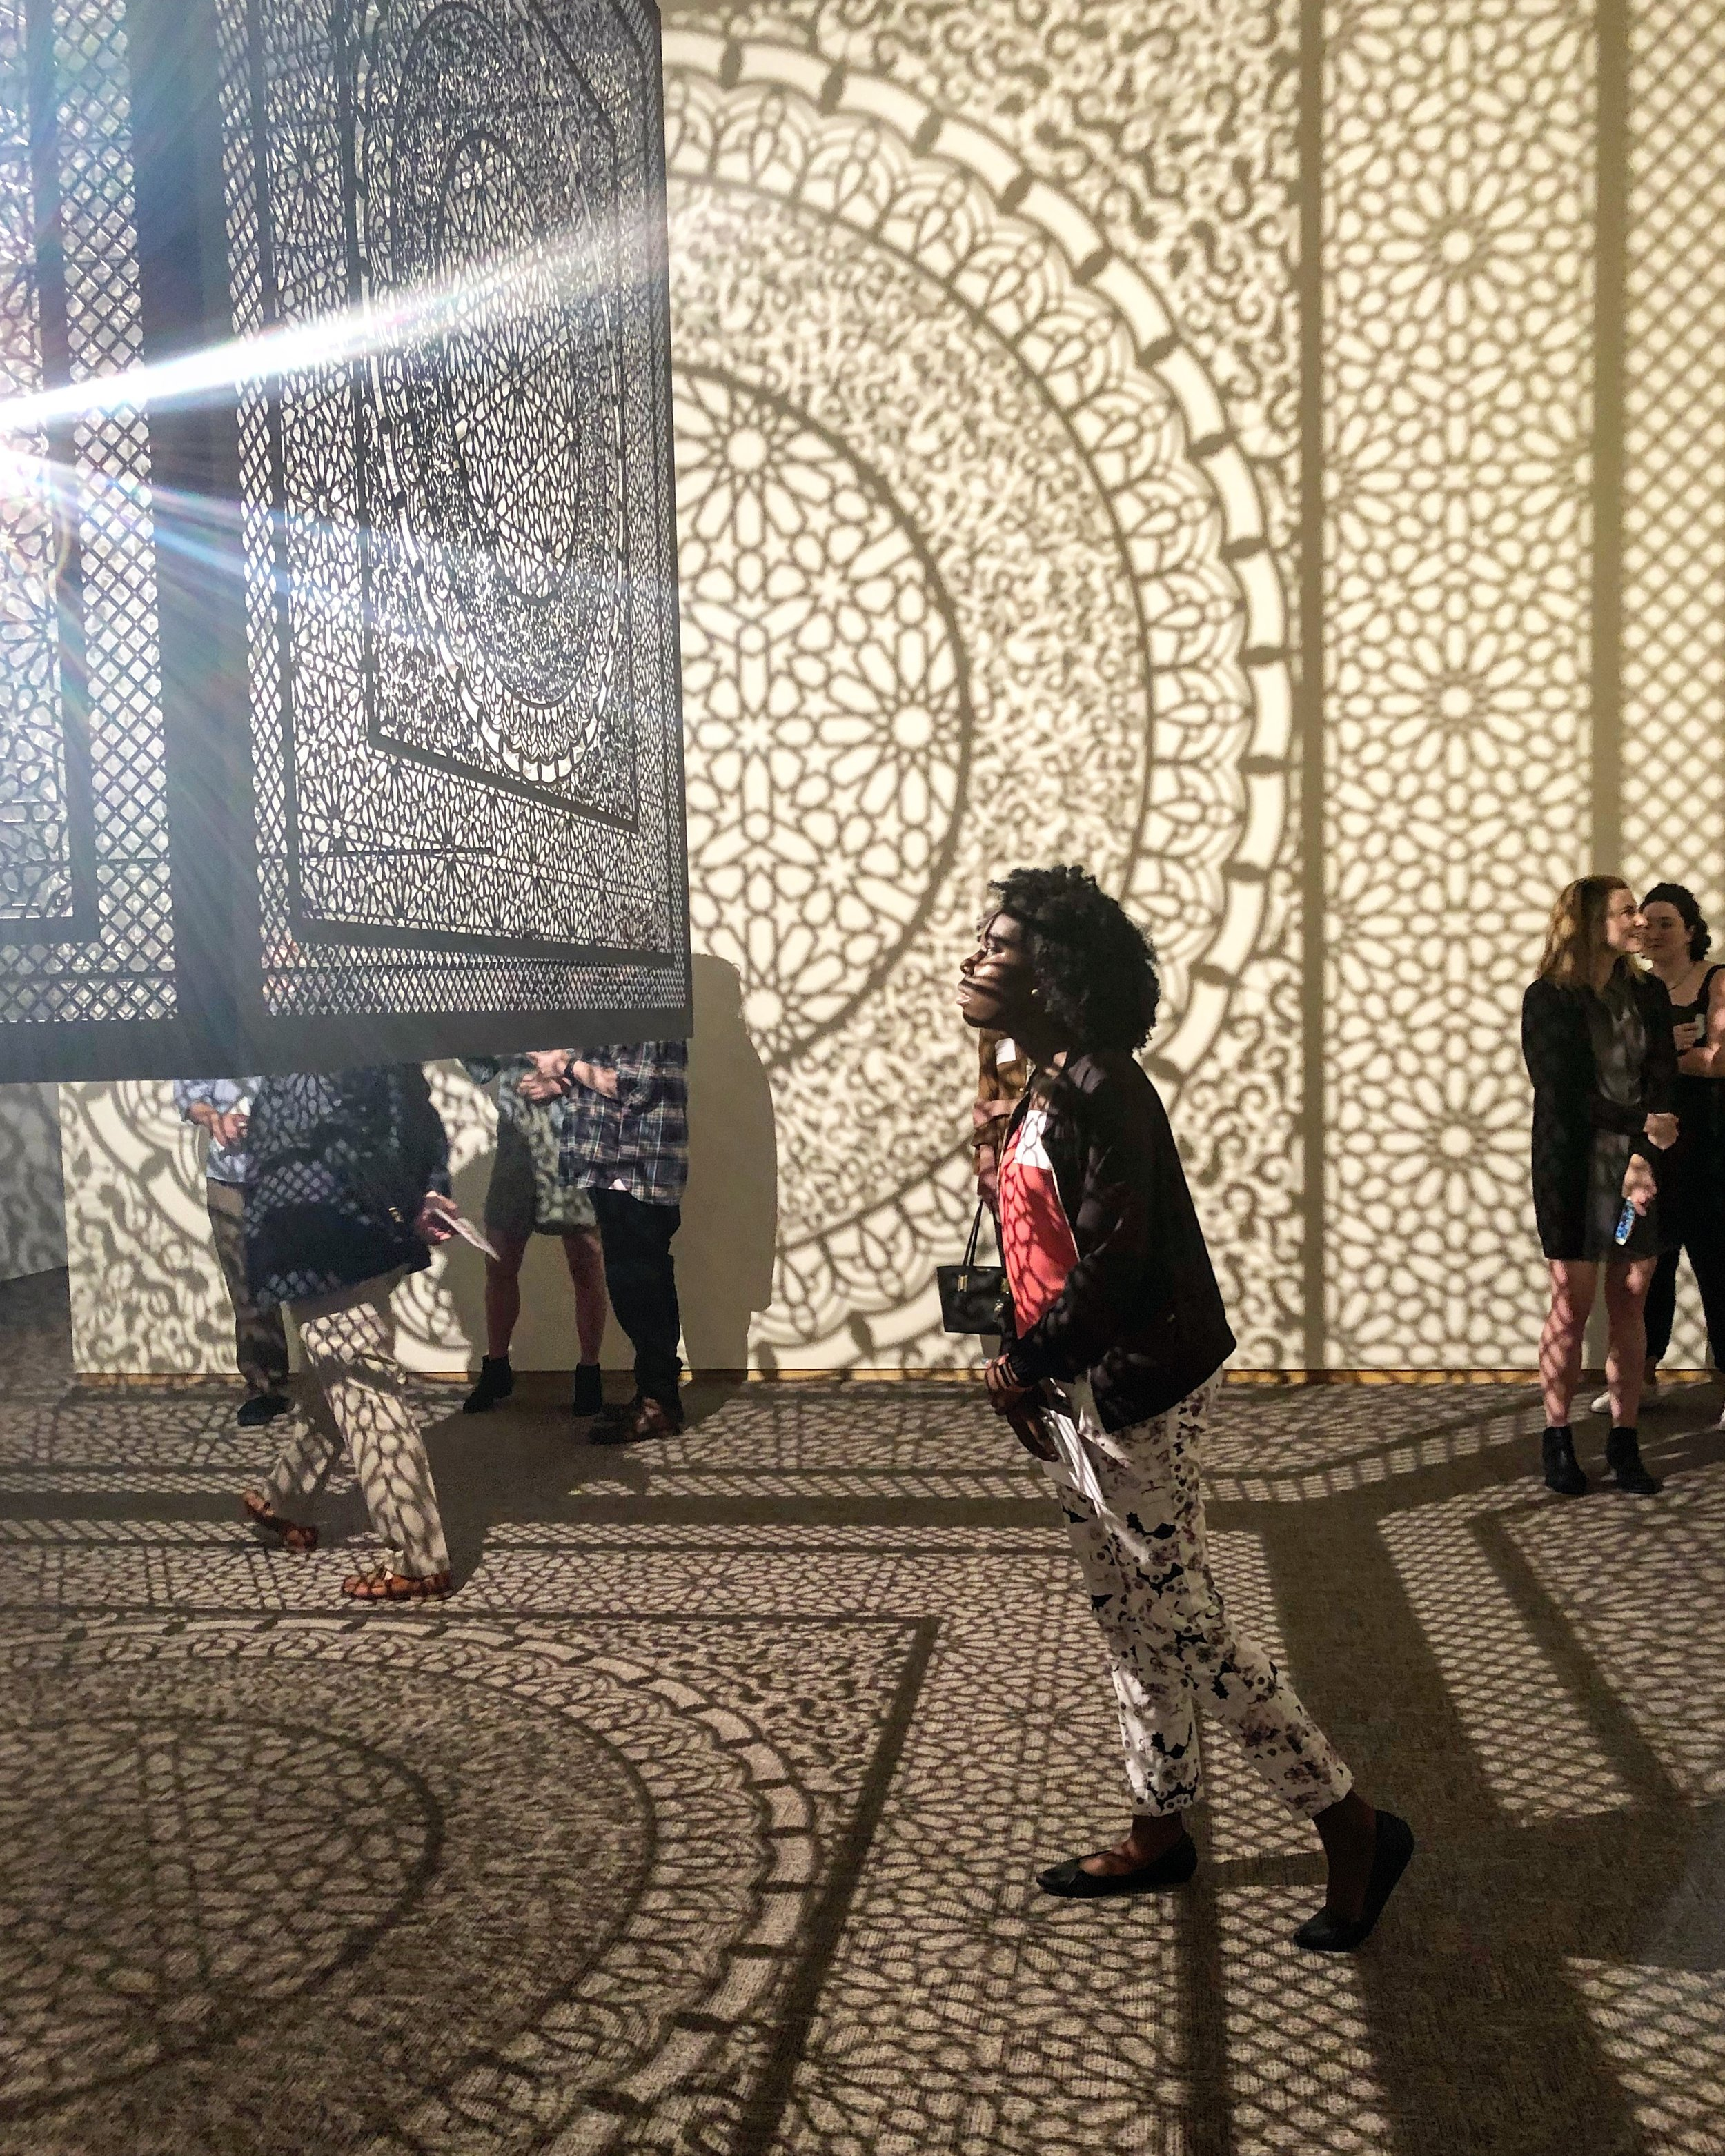 Another Favorite of mine: Anila Quayyum Agha, Intersections, 2013